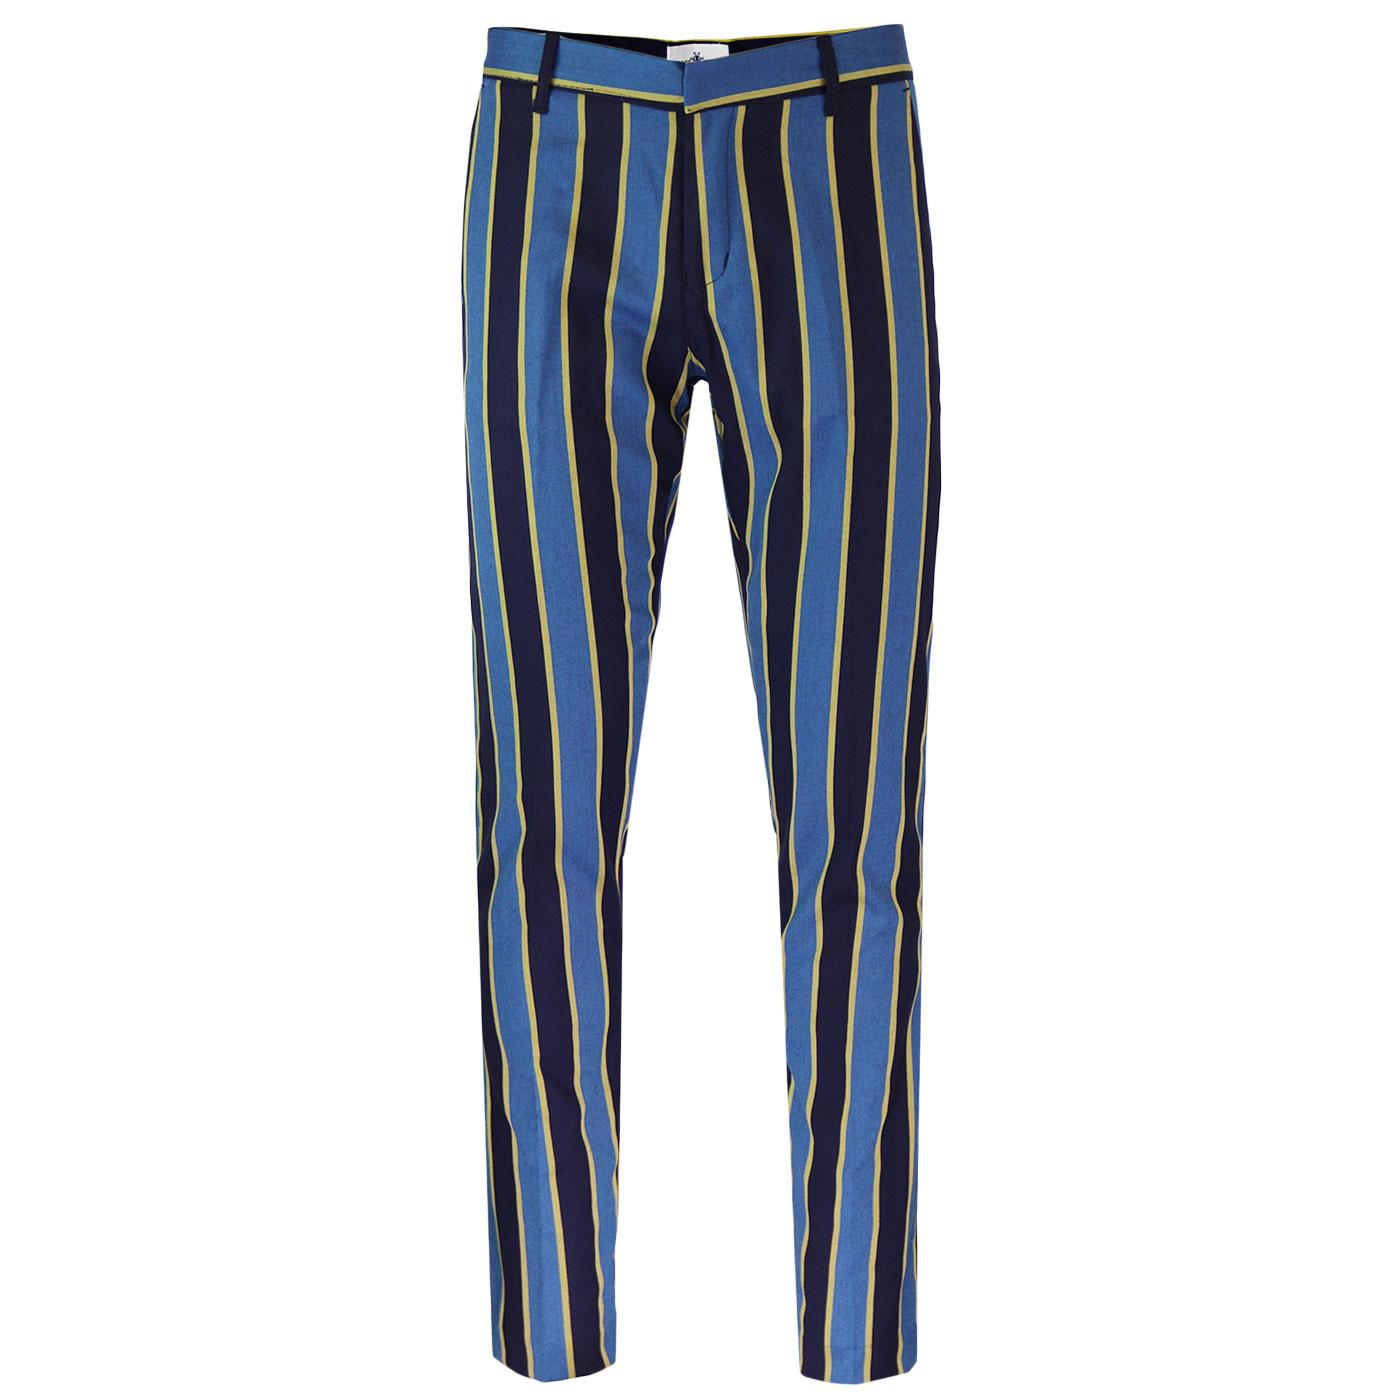 Offbeat MADCAP ENGLAND 60s Mod Stripe Trousers B/Y